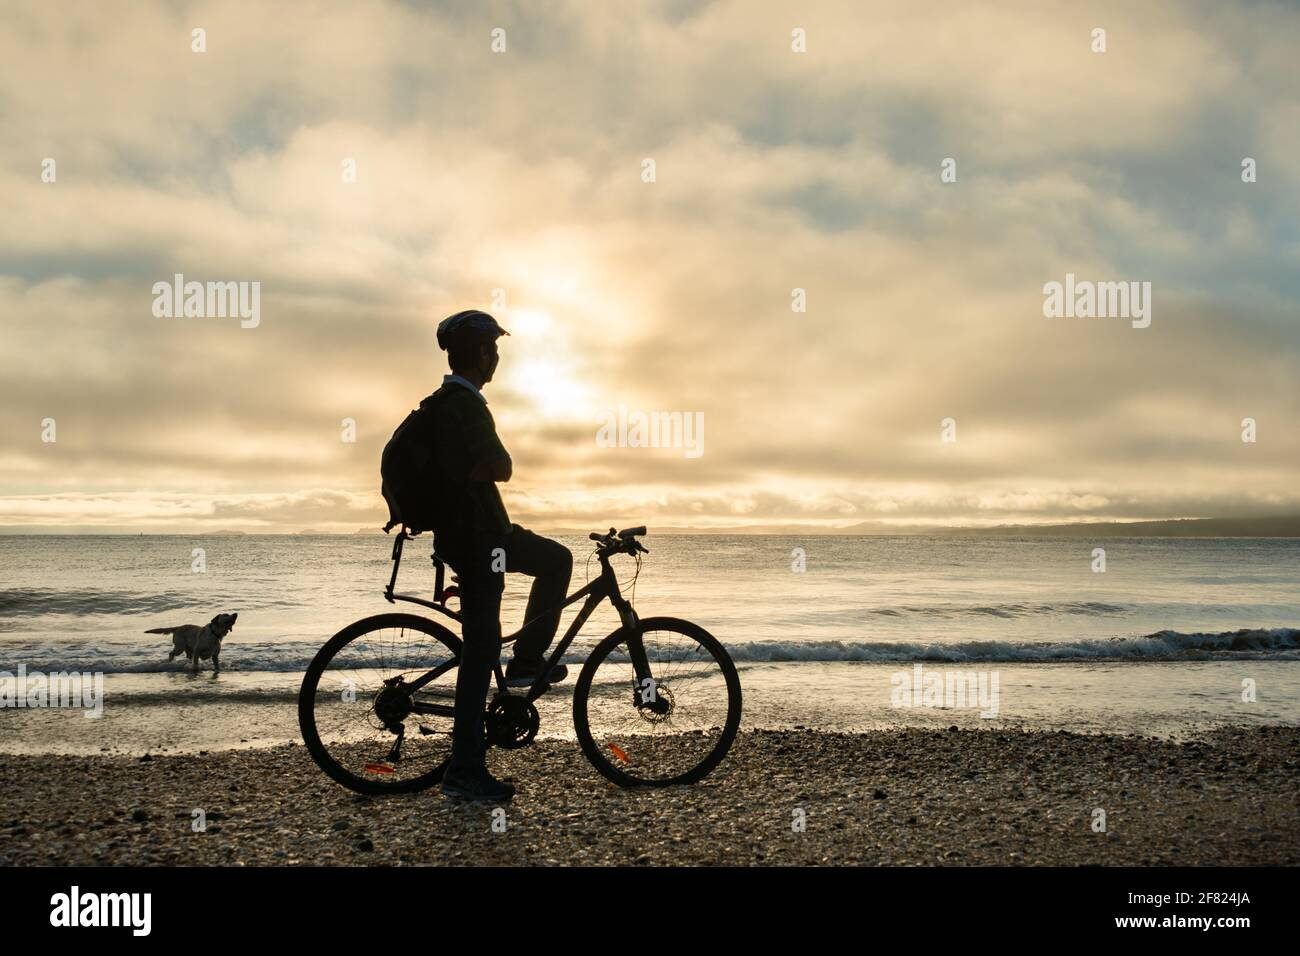 Silhouette image of a cyclist on the bicycle watching the sunrise and dog playing in the water at Milford beach, Auckland Stock Photo